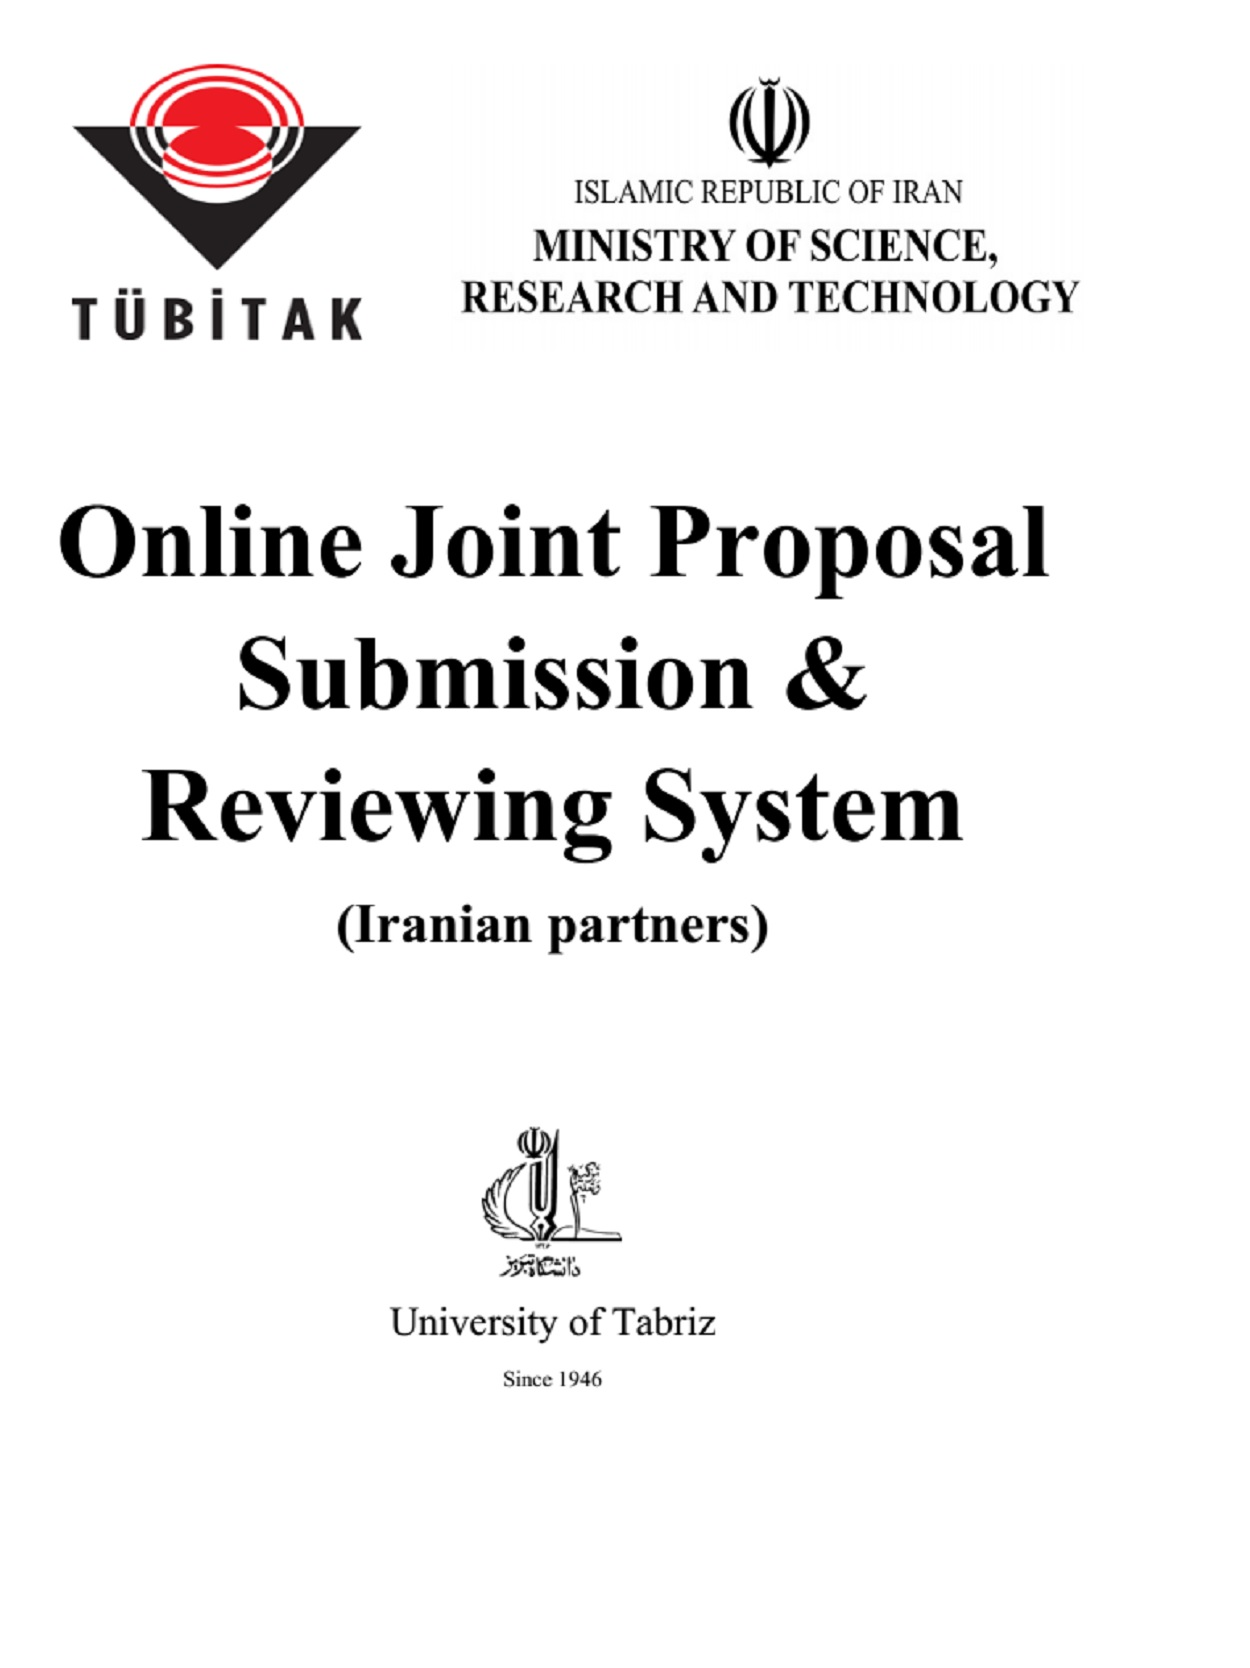 MSRT-TUBITAK JOINT PROJECT PROPOSAL CALL